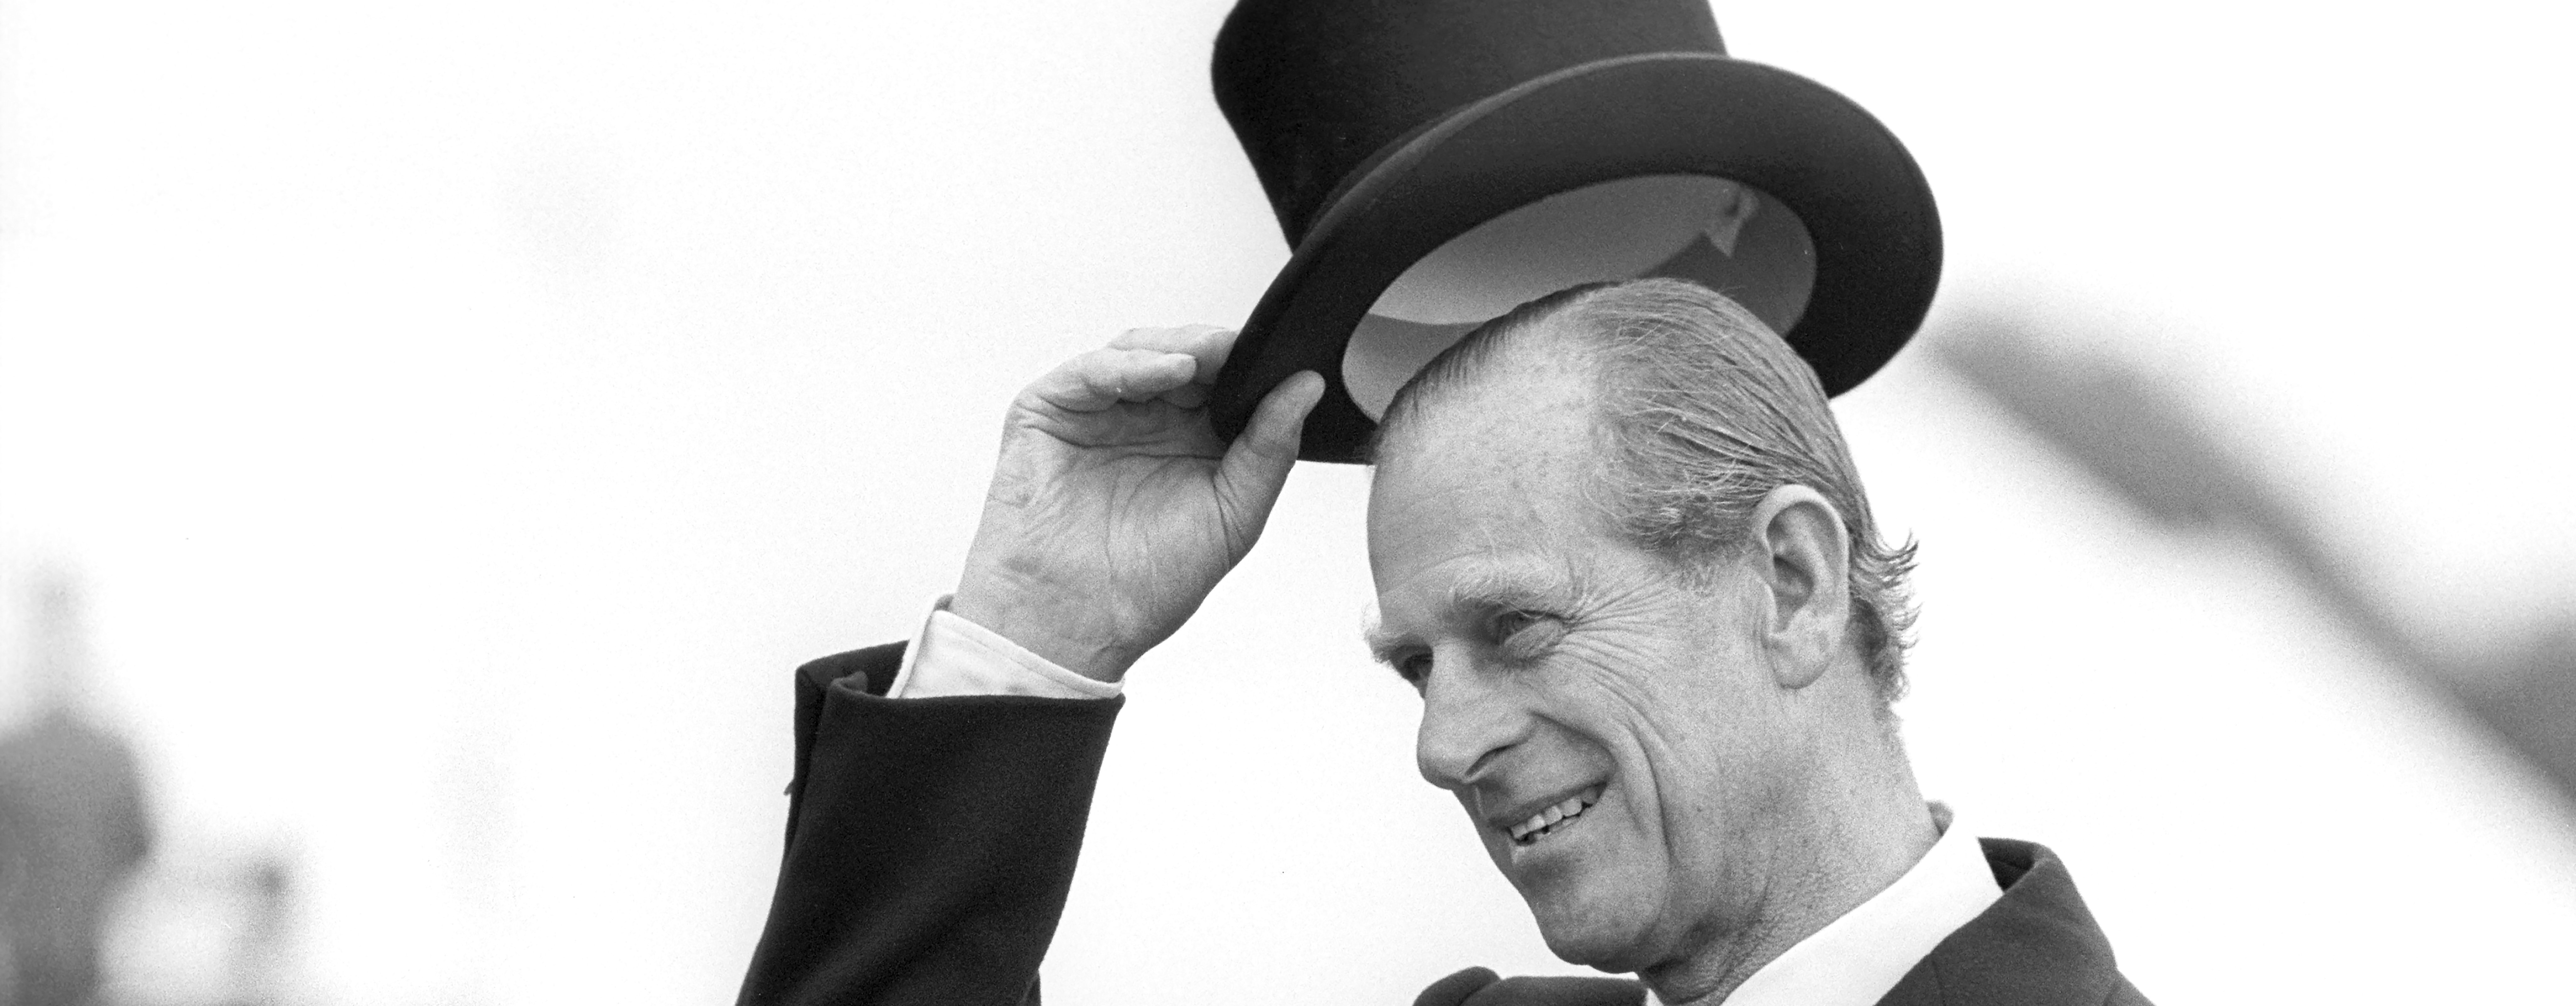 Prince Philip raises his top hat to acknowledge a crowd